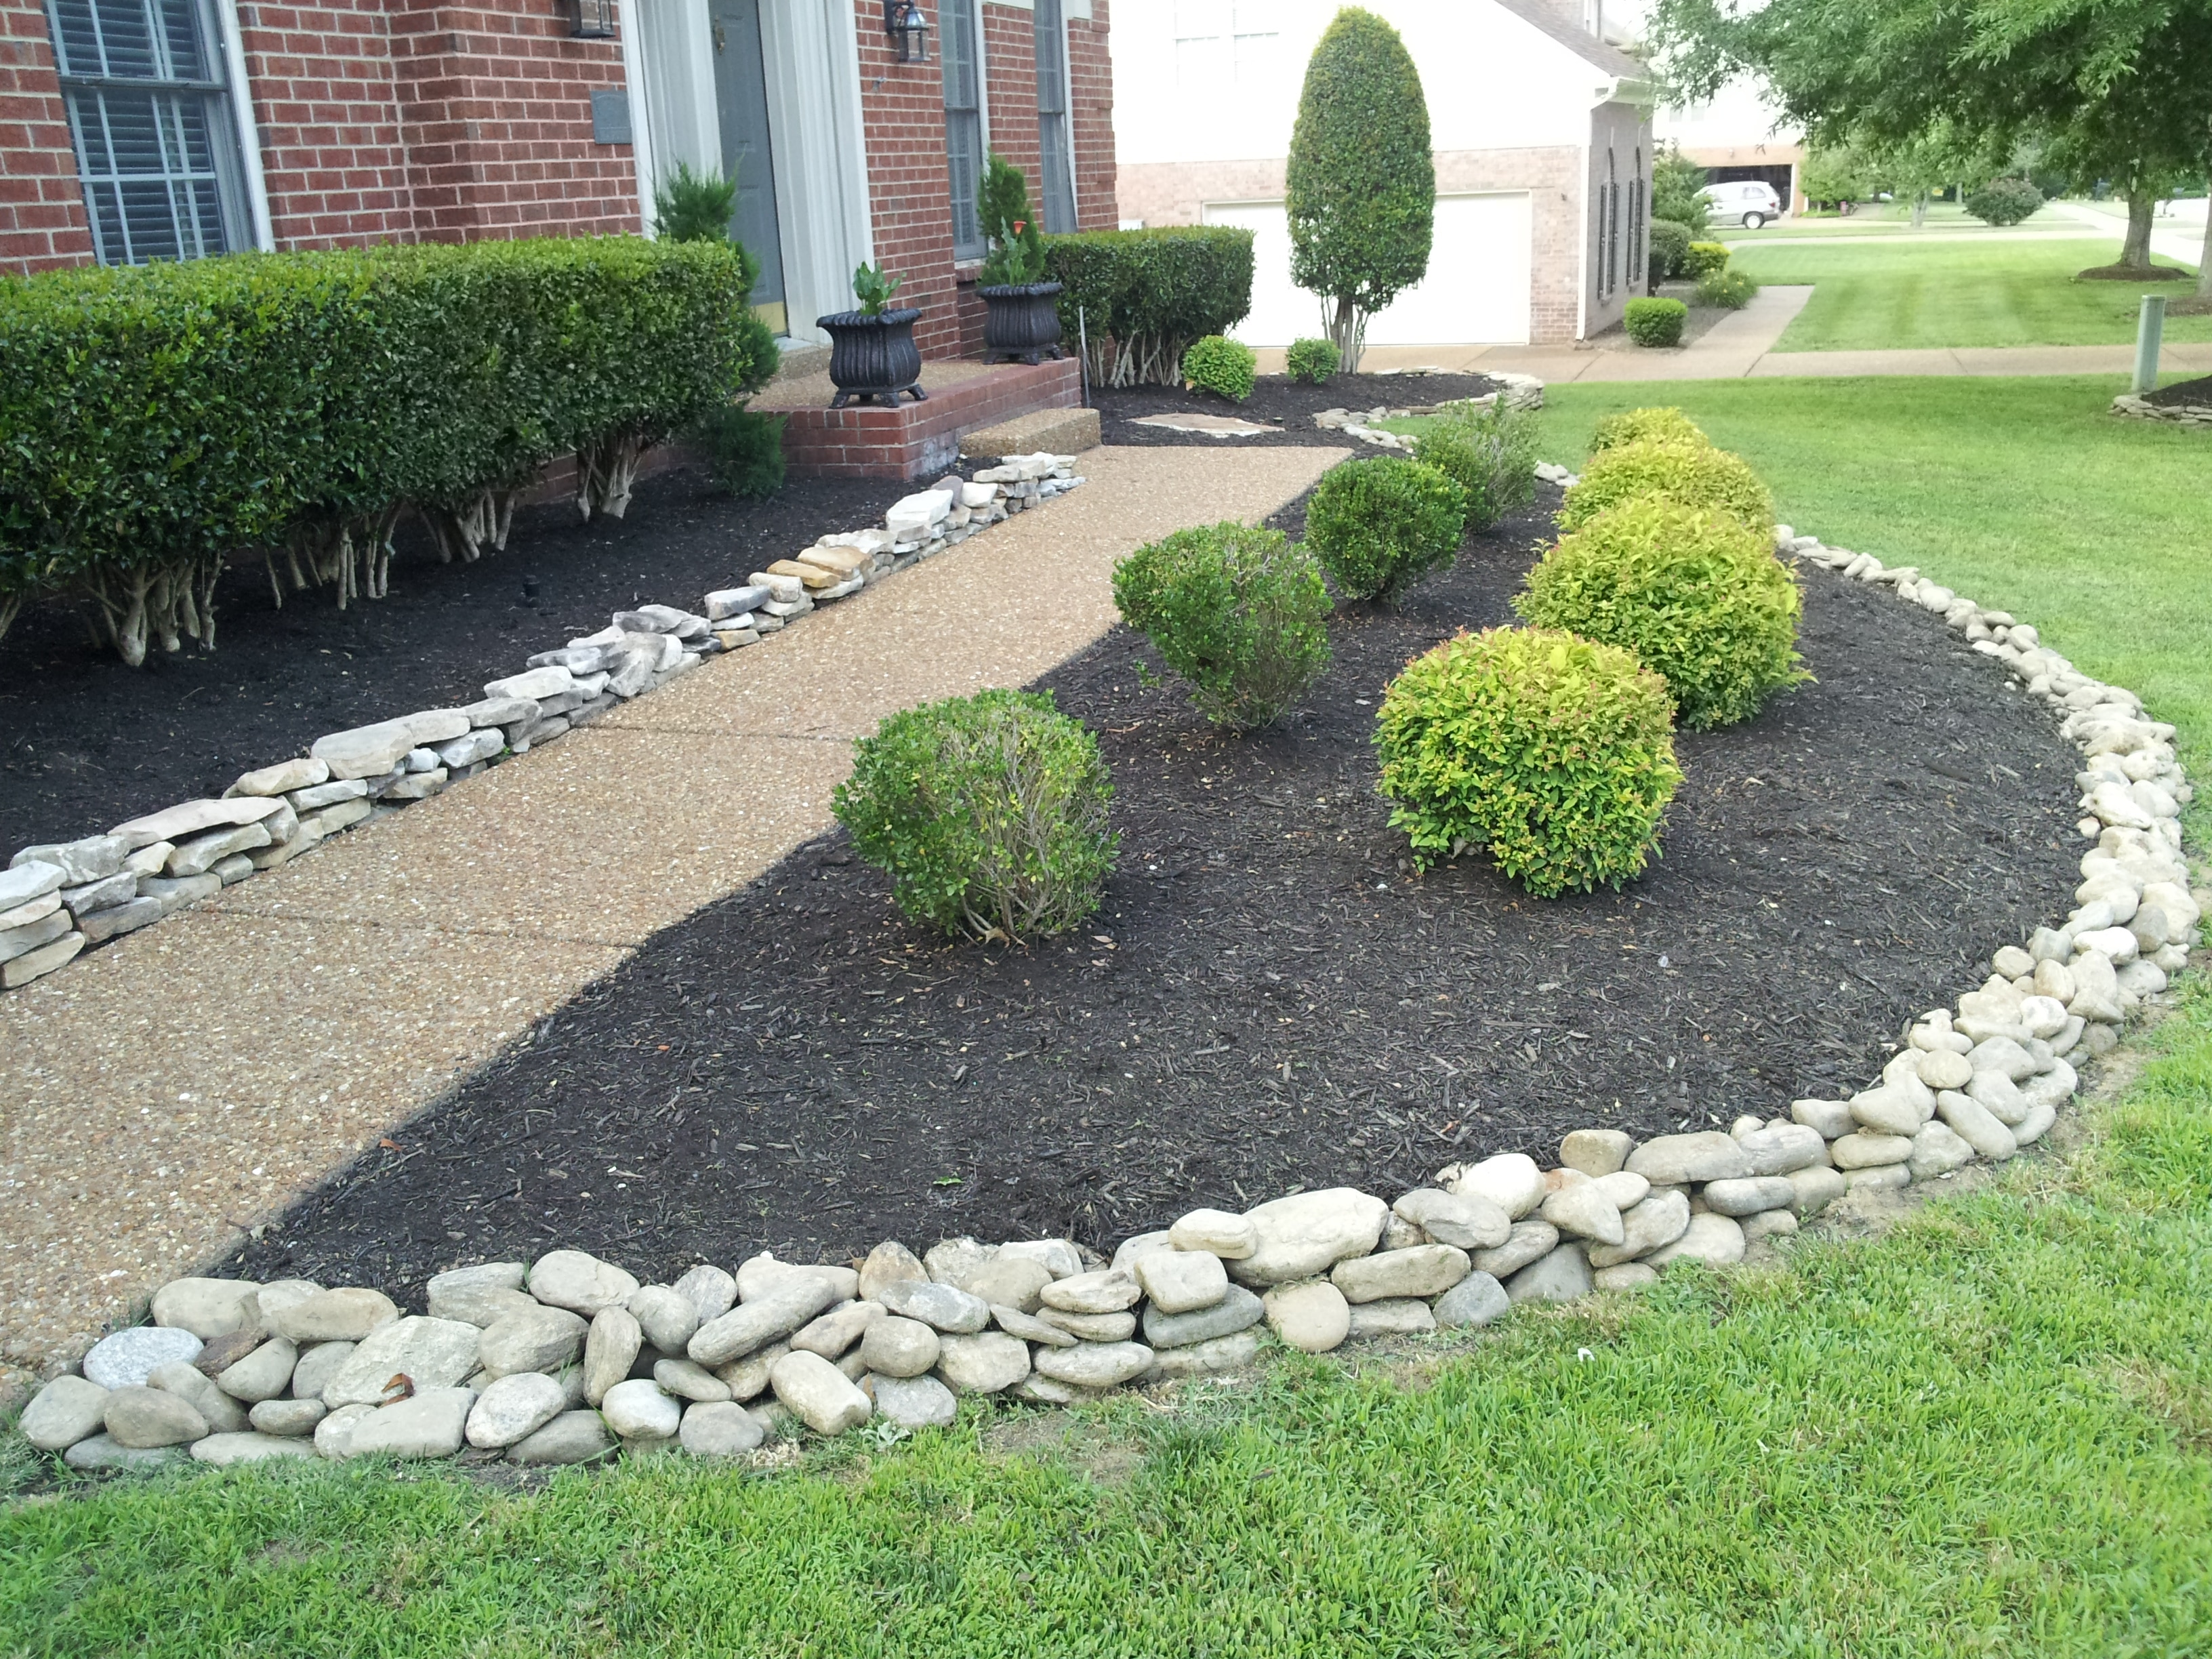 Landscaping Brick Idea